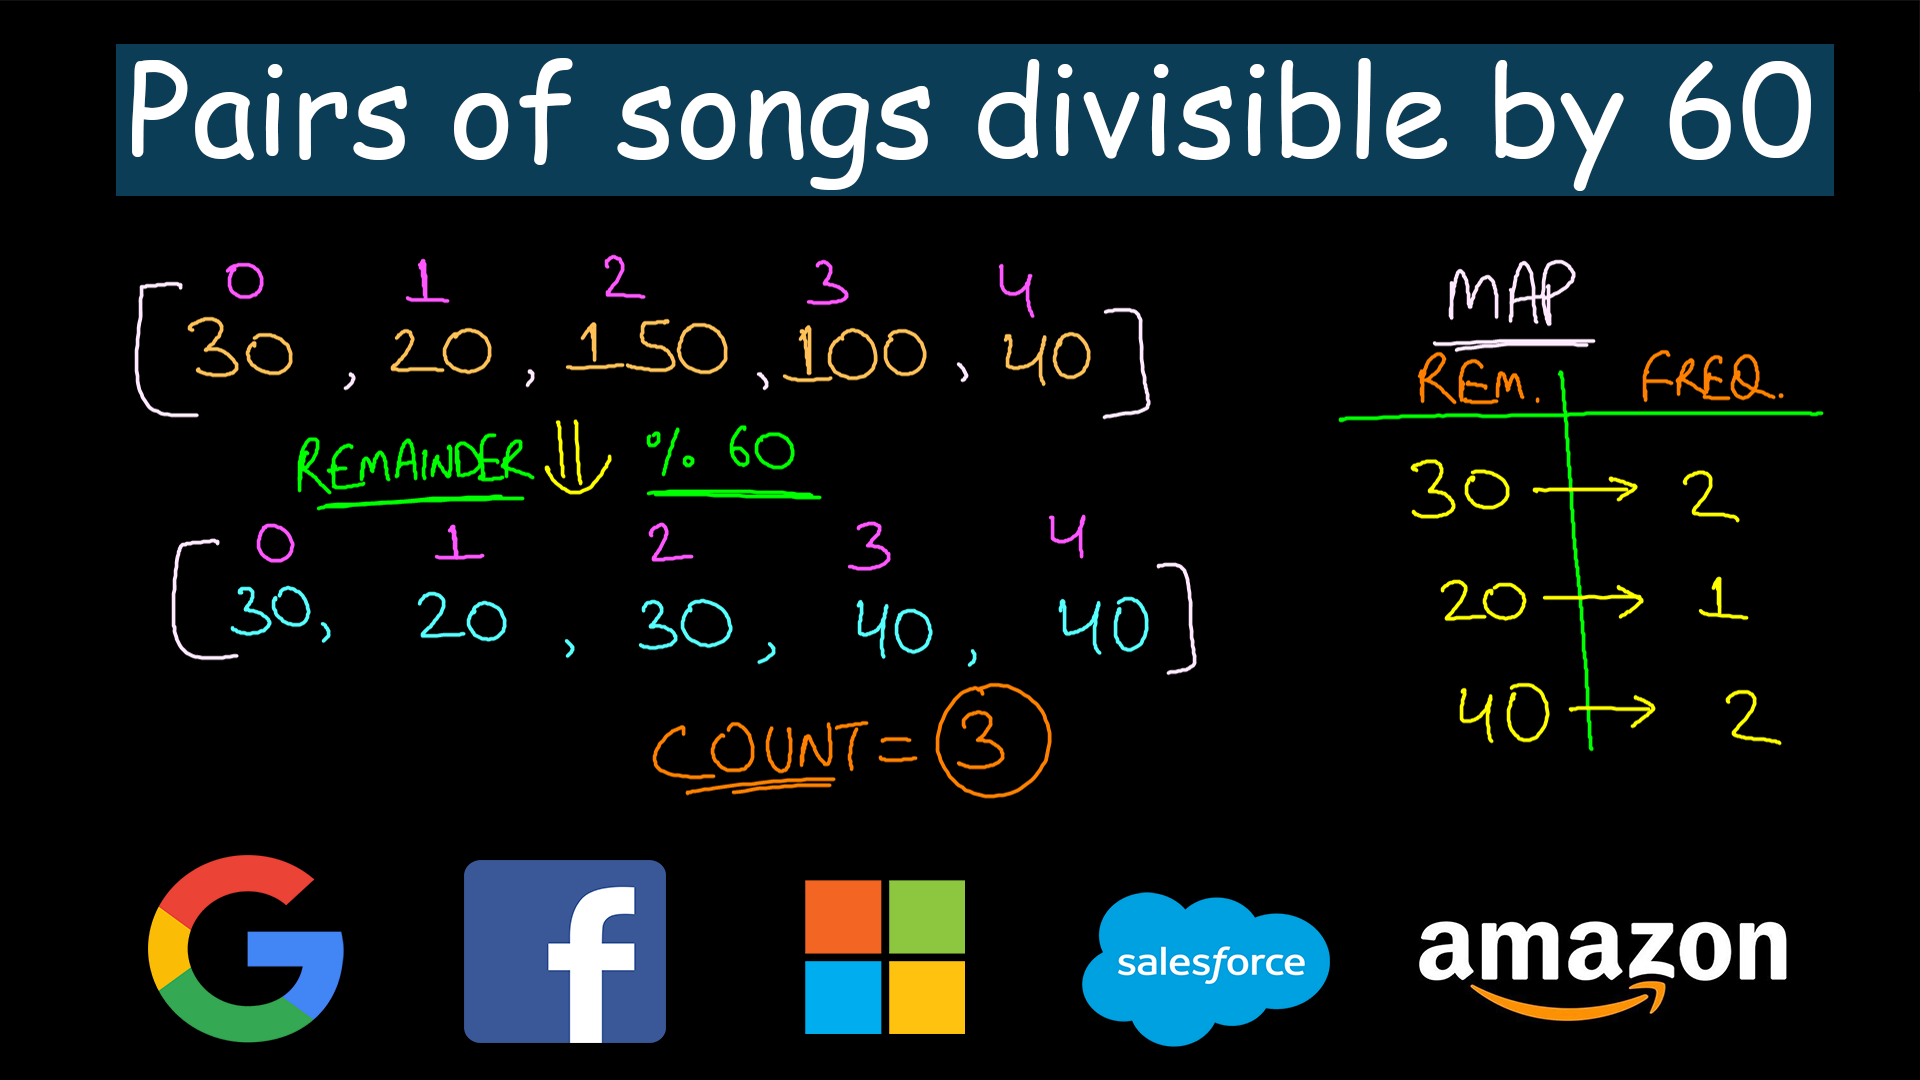 Pairs of songs with total durations divisible by 60 | Leetcode #1010